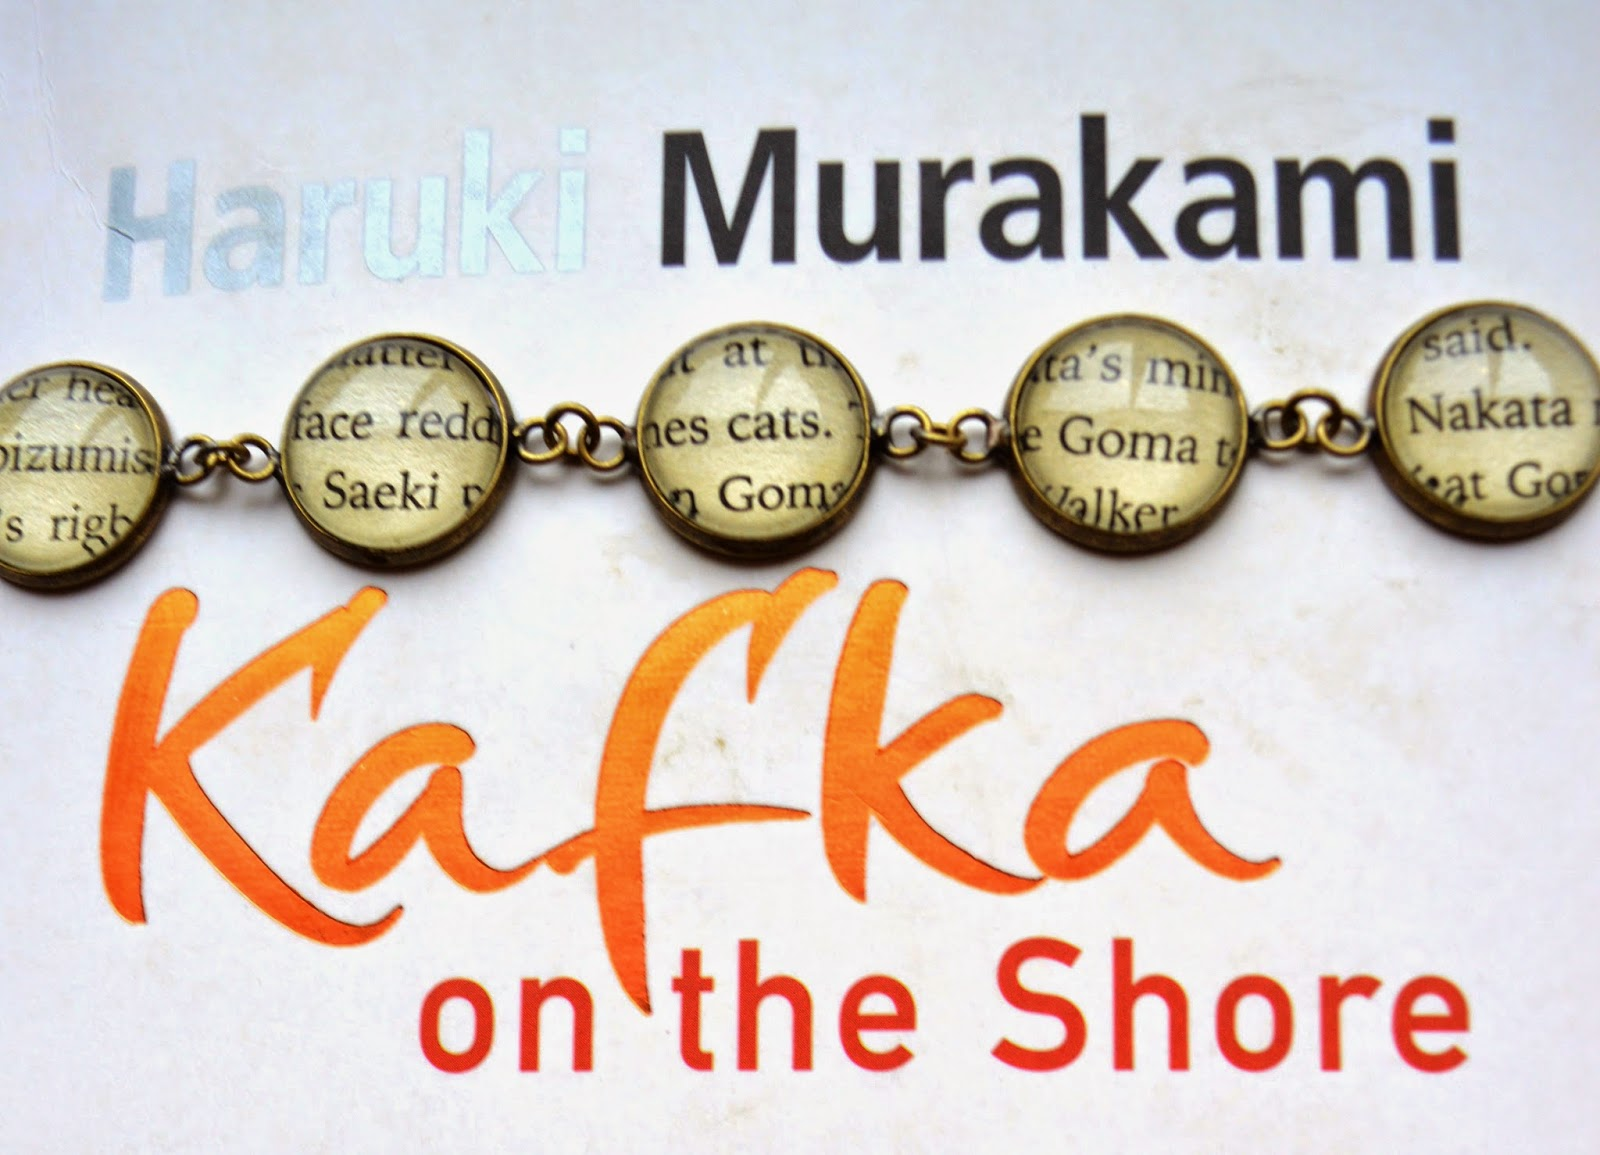 Bookity, Haruki Murakami, jewellery, handmade, gift, present, Christmas, idea, for readers, for book lovers, for bibliophiles, review, picture, bracelet, up-cycled